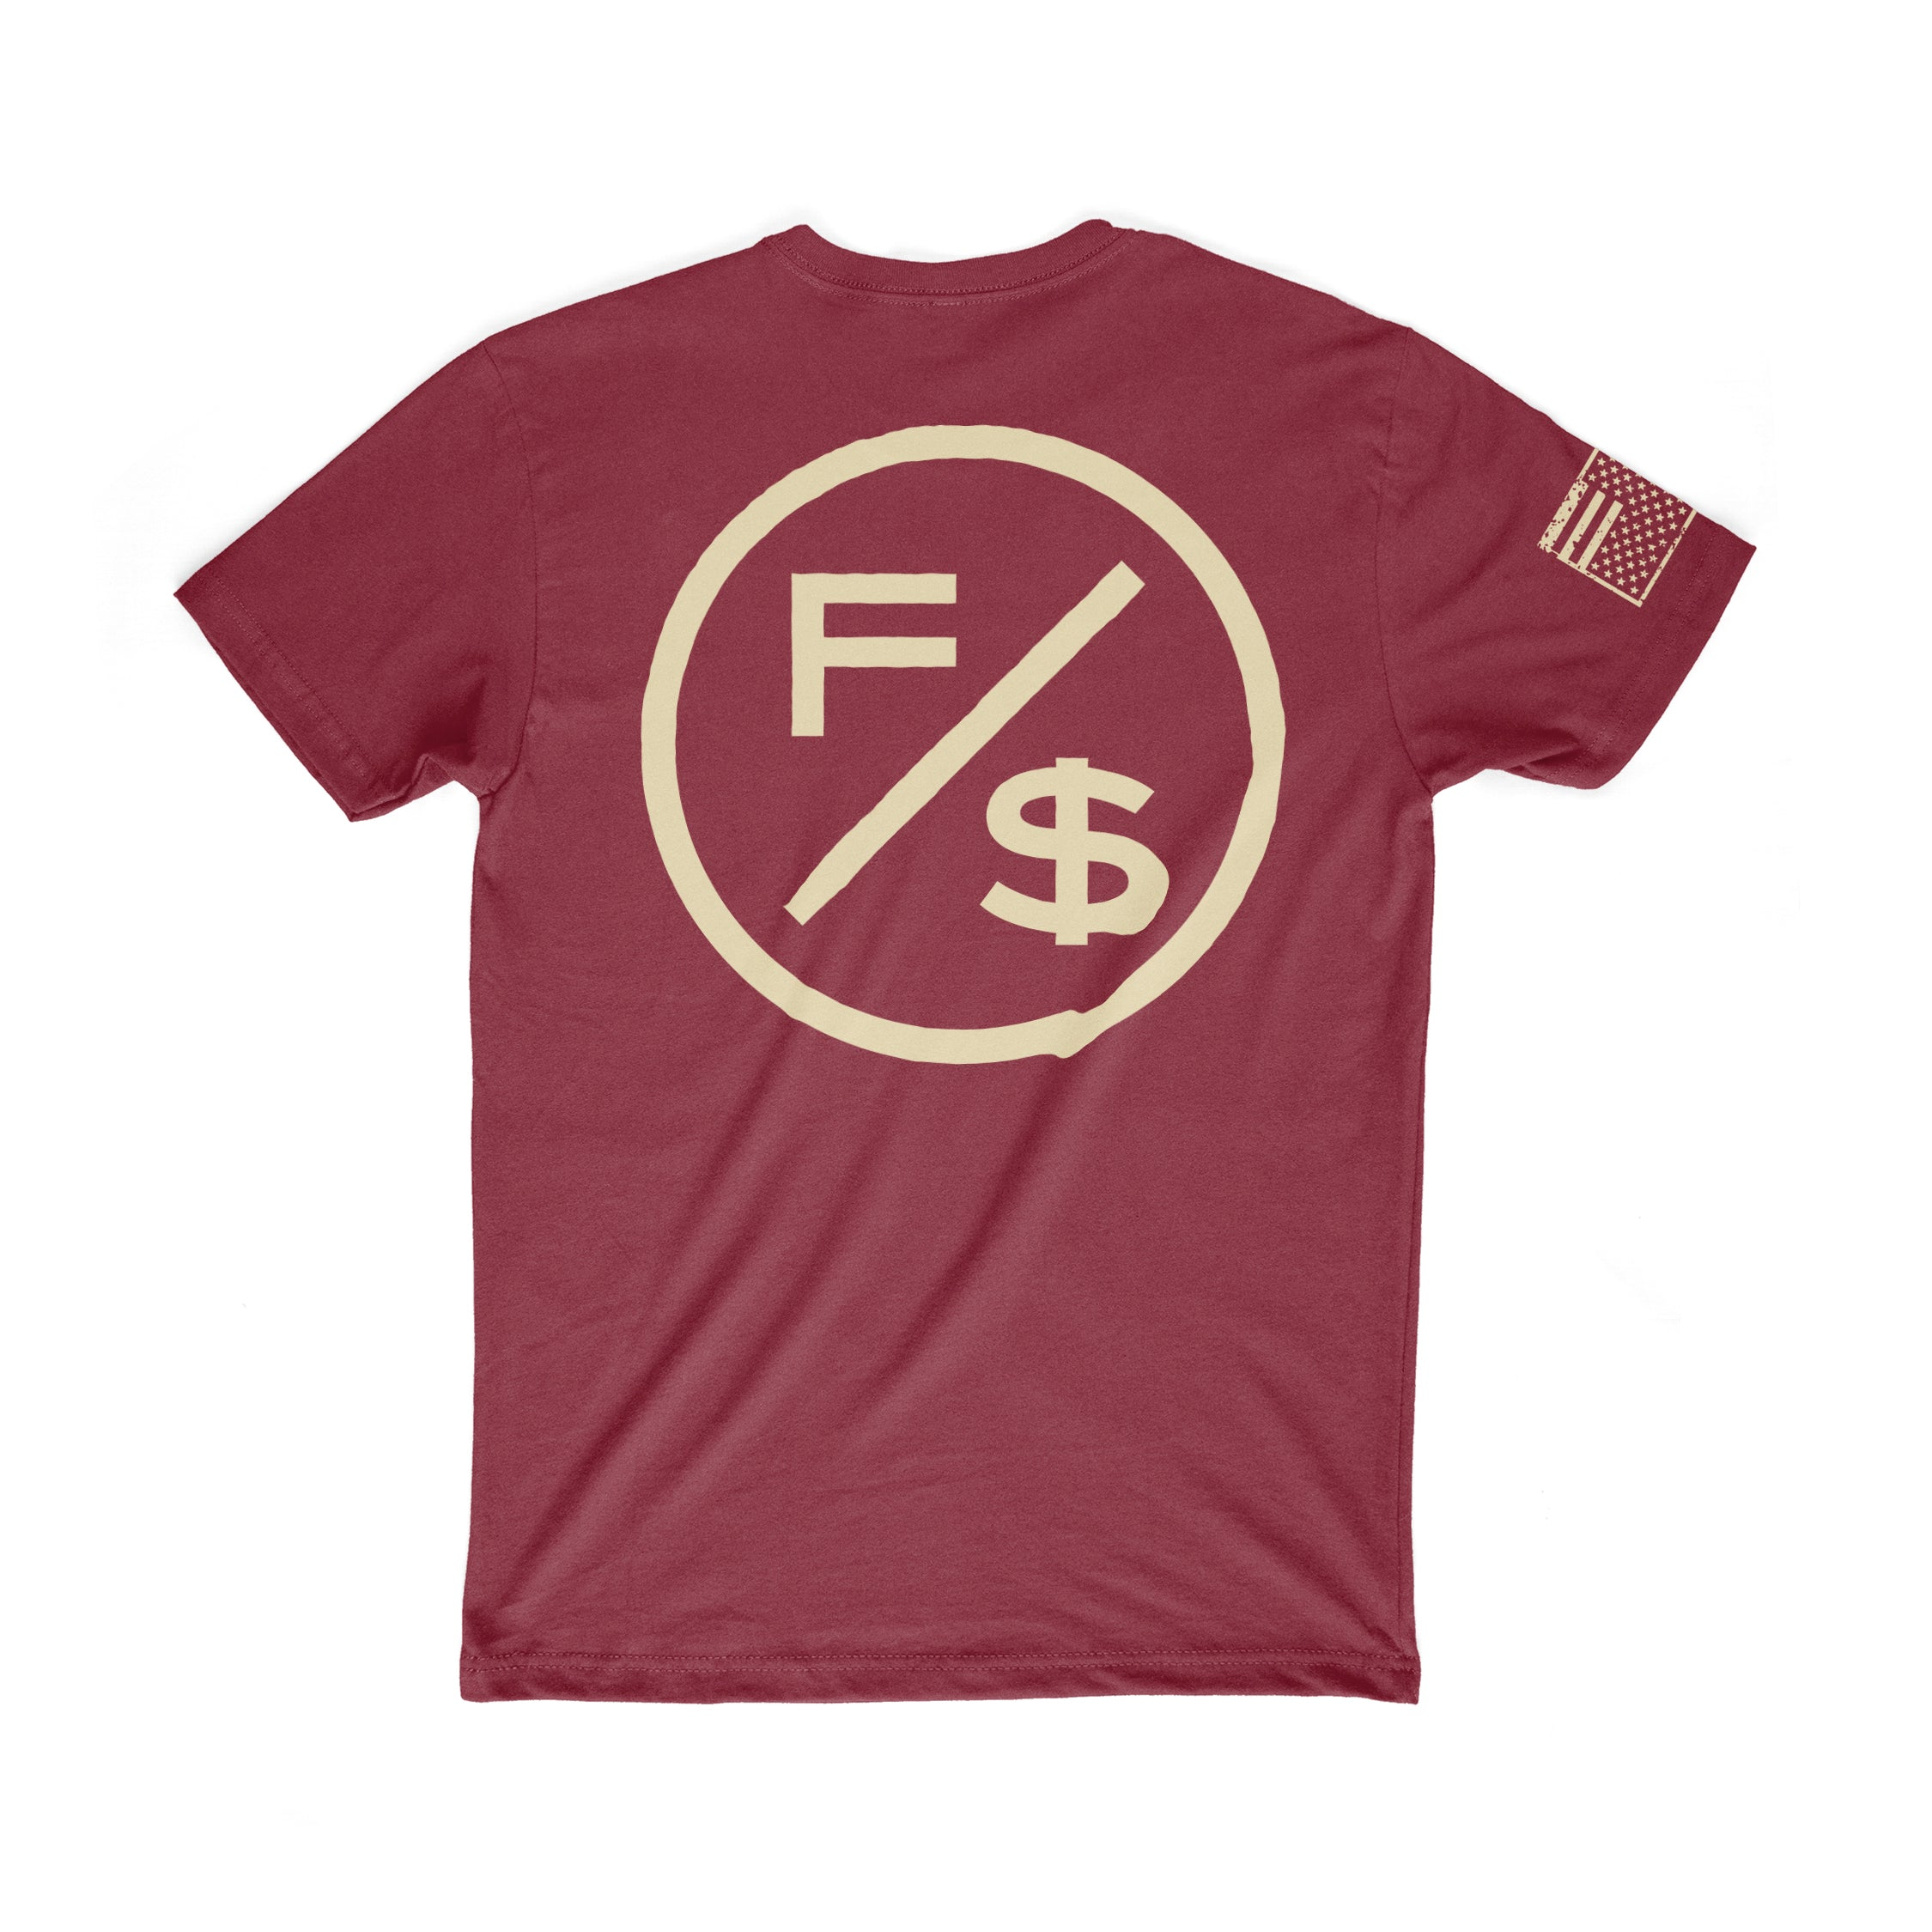 Family Over Money (Maroon/Cream)